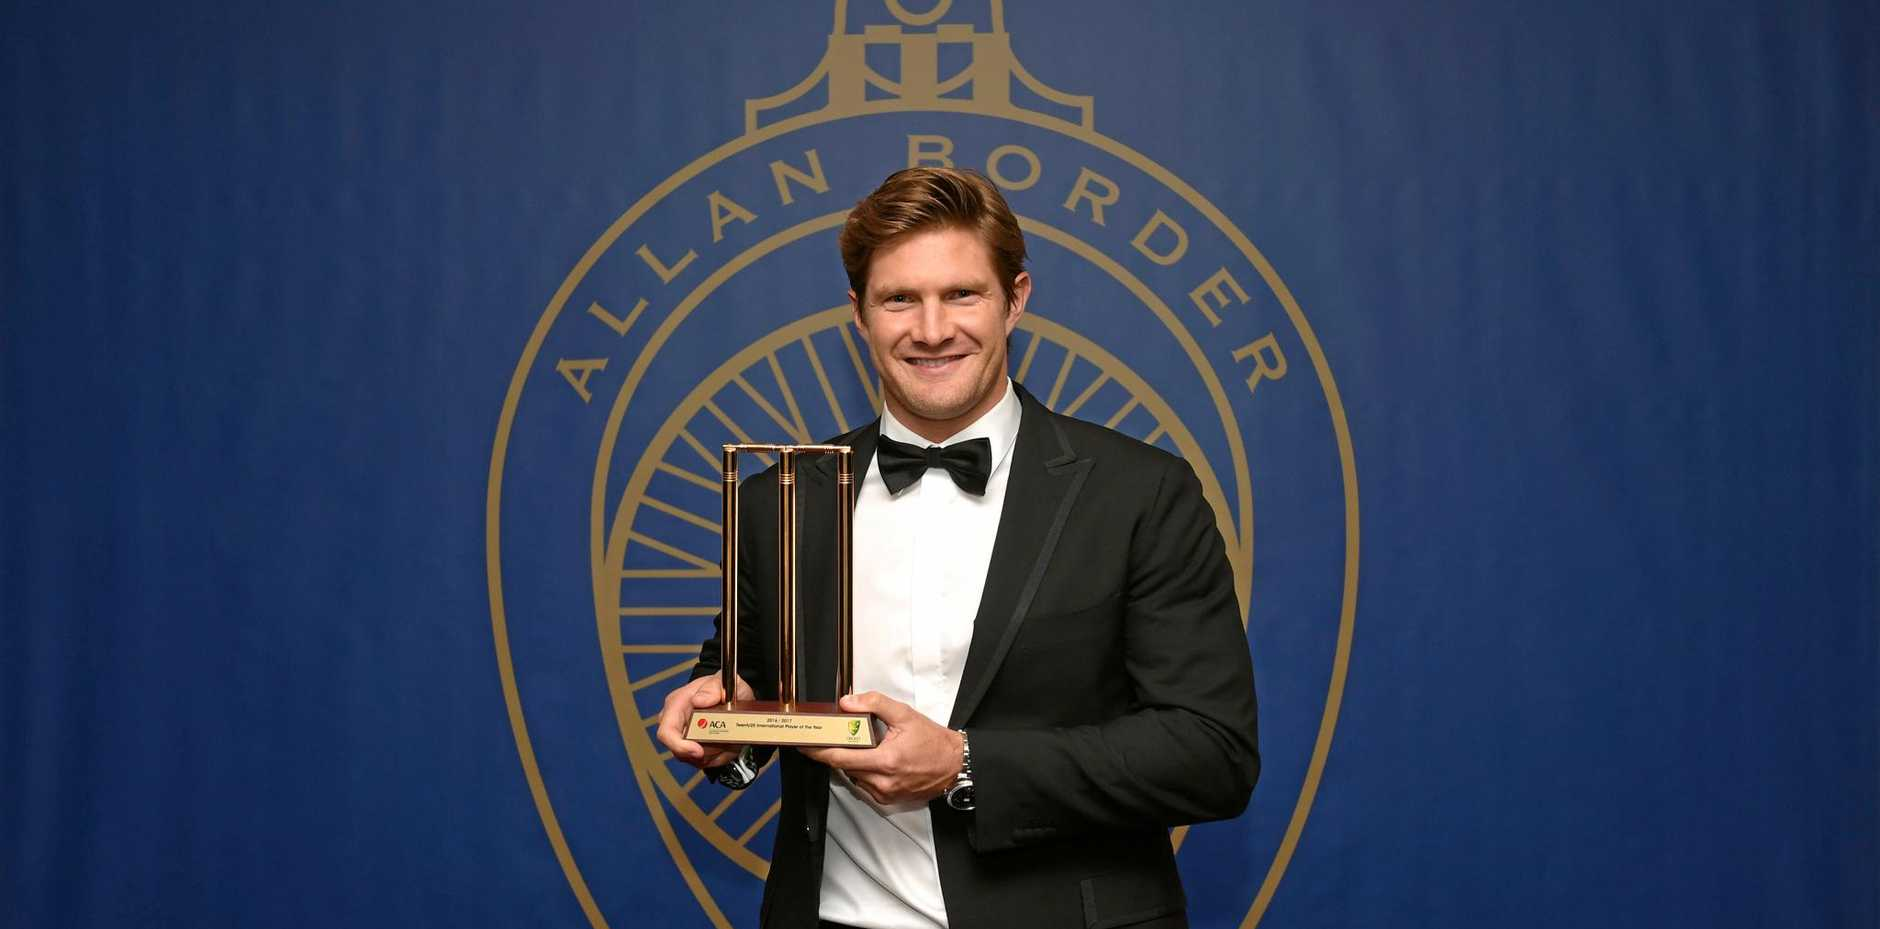 T20 Player of the Year Shane Watson poses for a photograph with his award at the Allan Border Medal award ceremony in Sydney